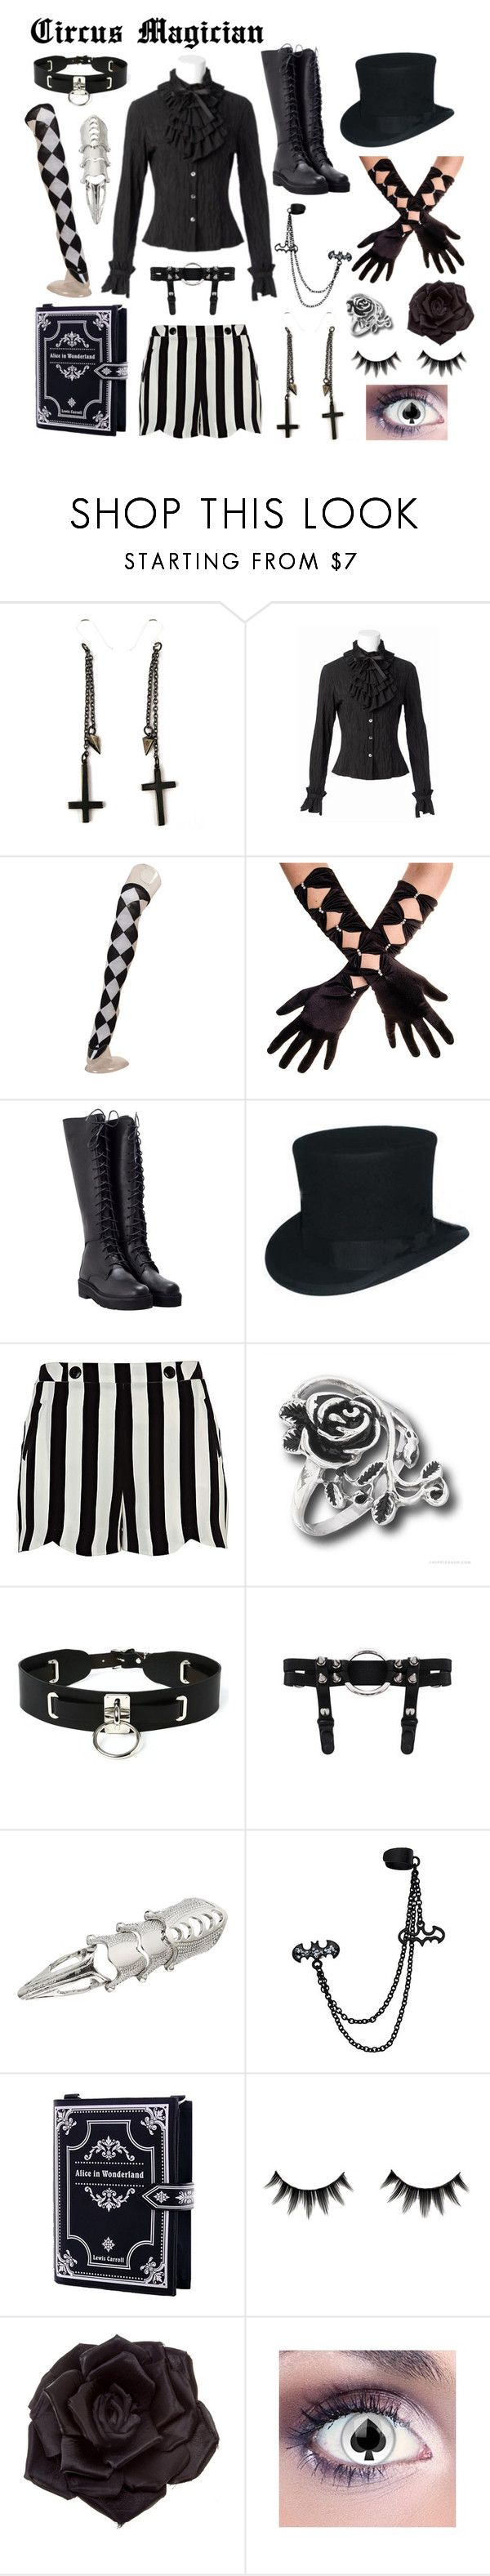 """Circus Magician"" by melodyfire ❤ liked on Polyvore featuring Alex and Chloe, Bodyline, LD Tuttle, River Island, Zana Bayne and Johnny Loves Rosie"